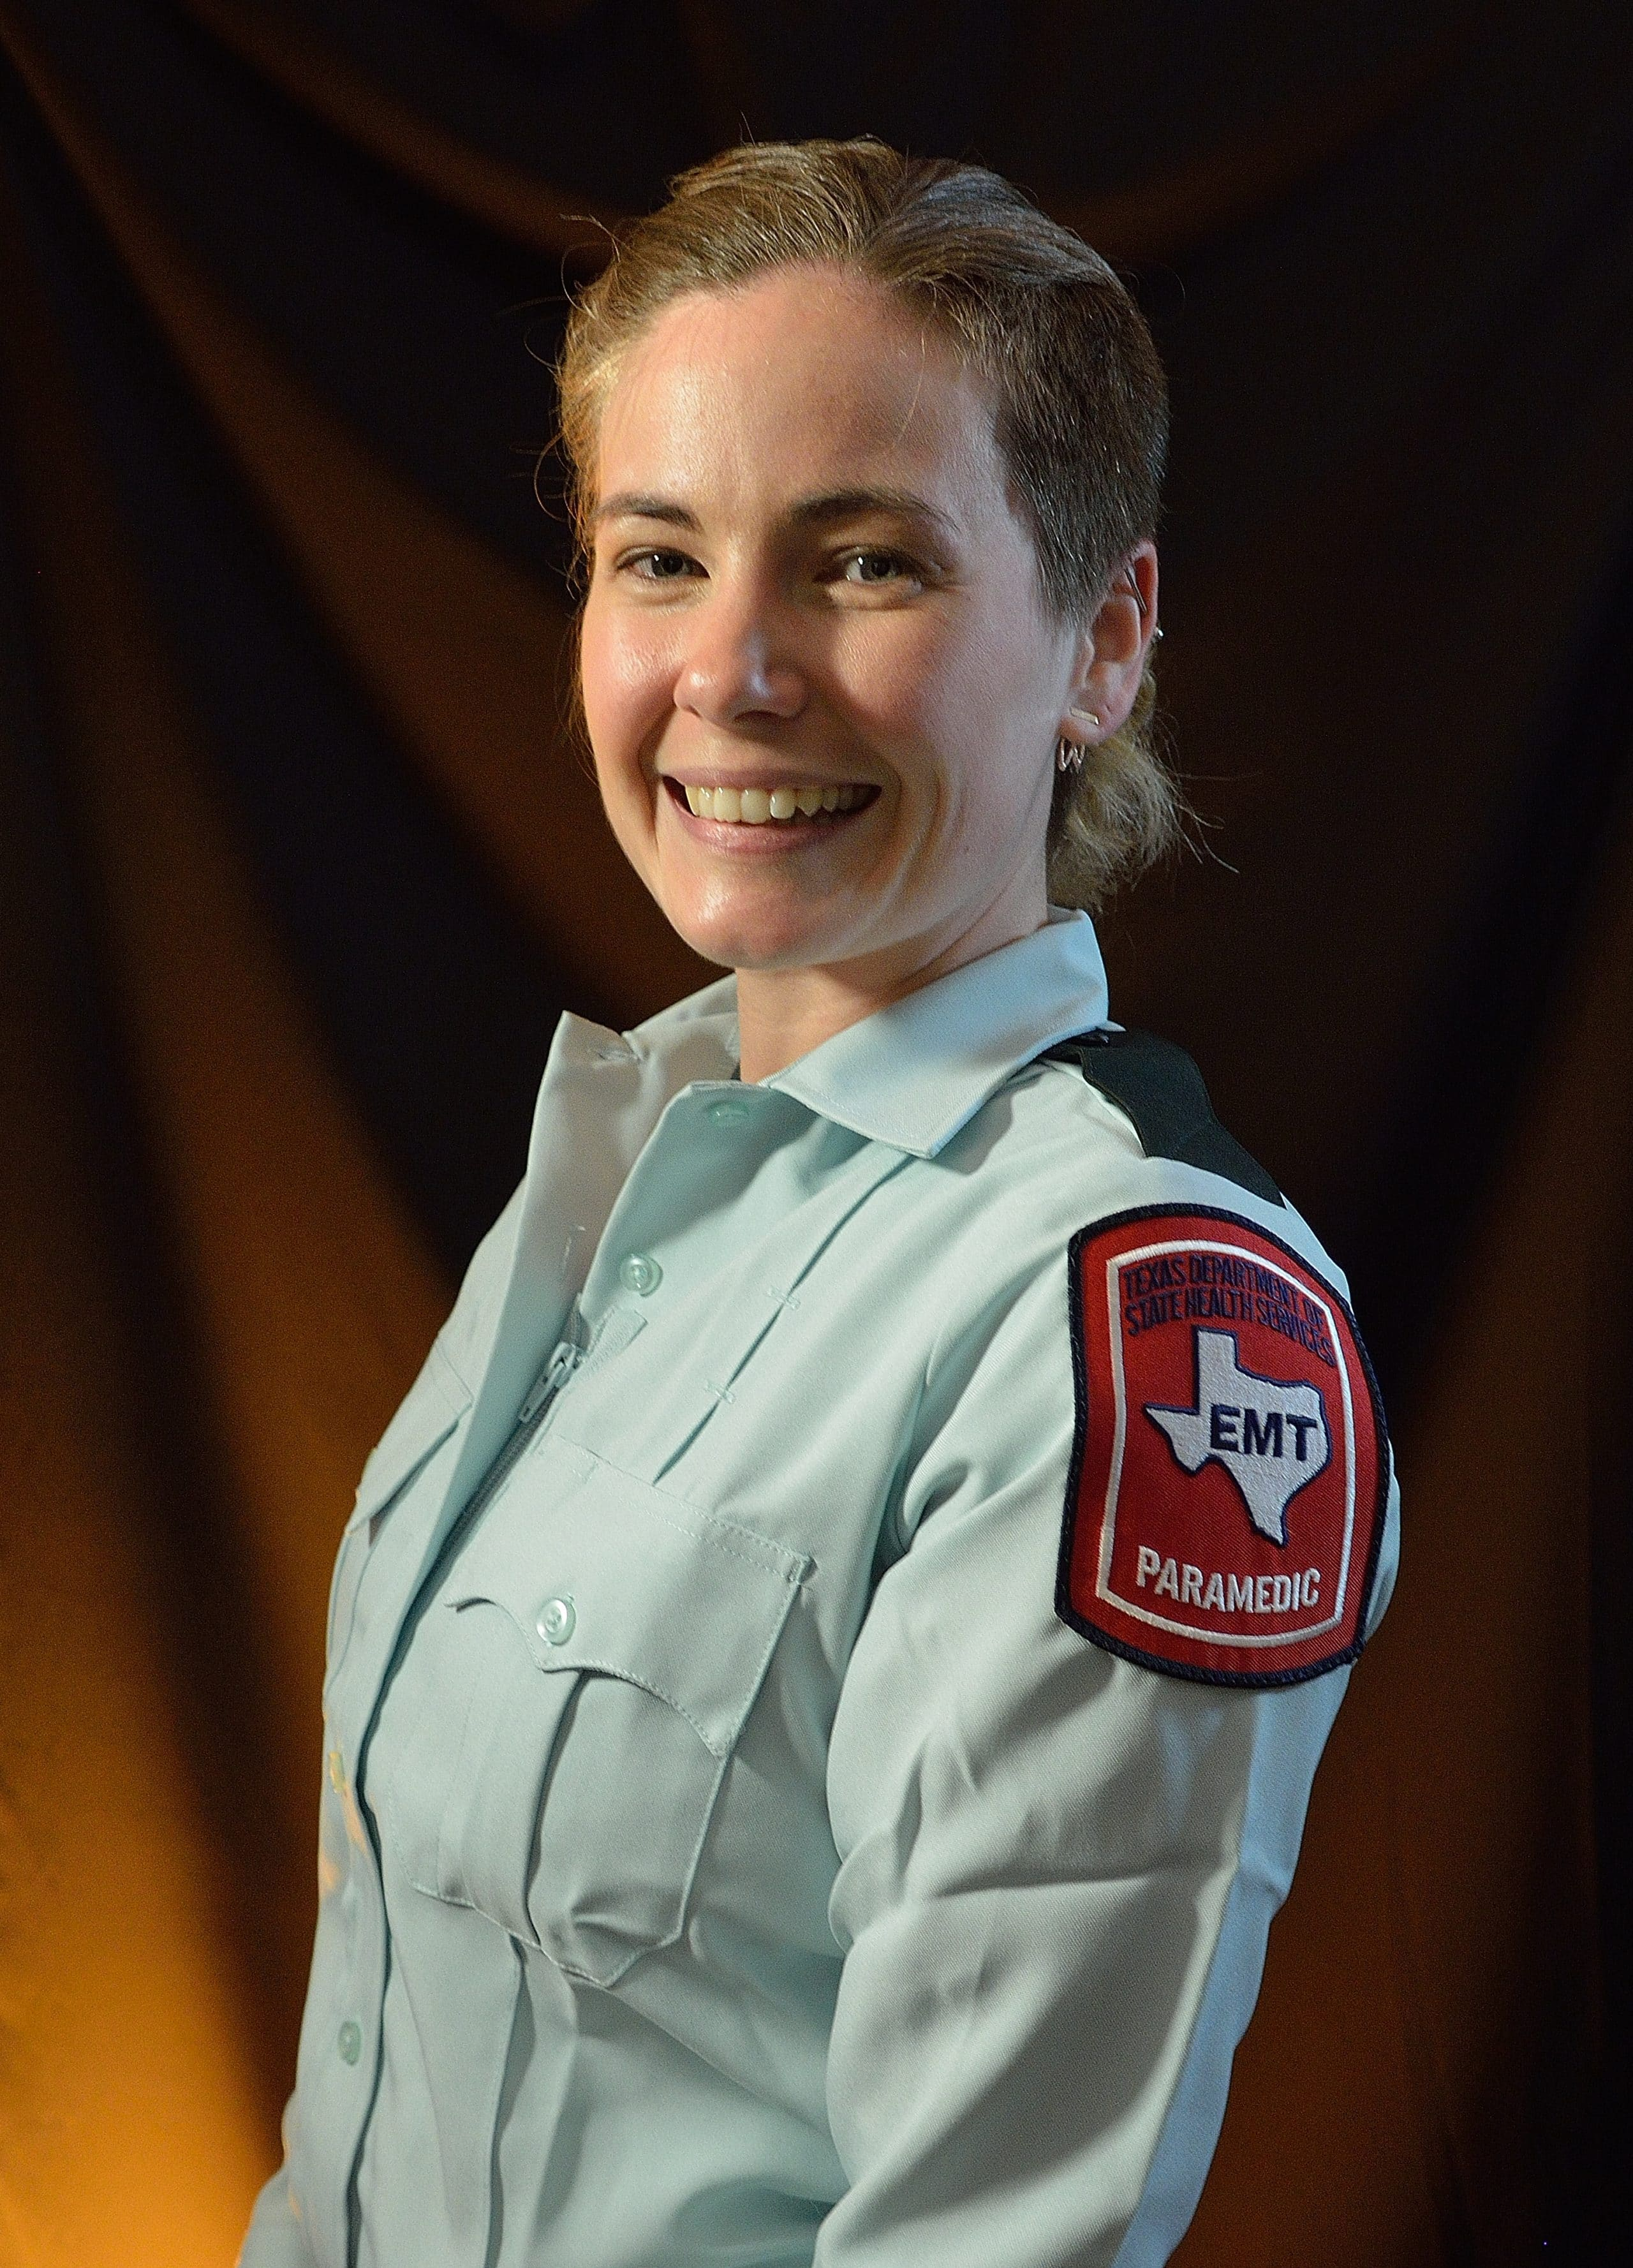 2019 Texas Paramedic of the Year